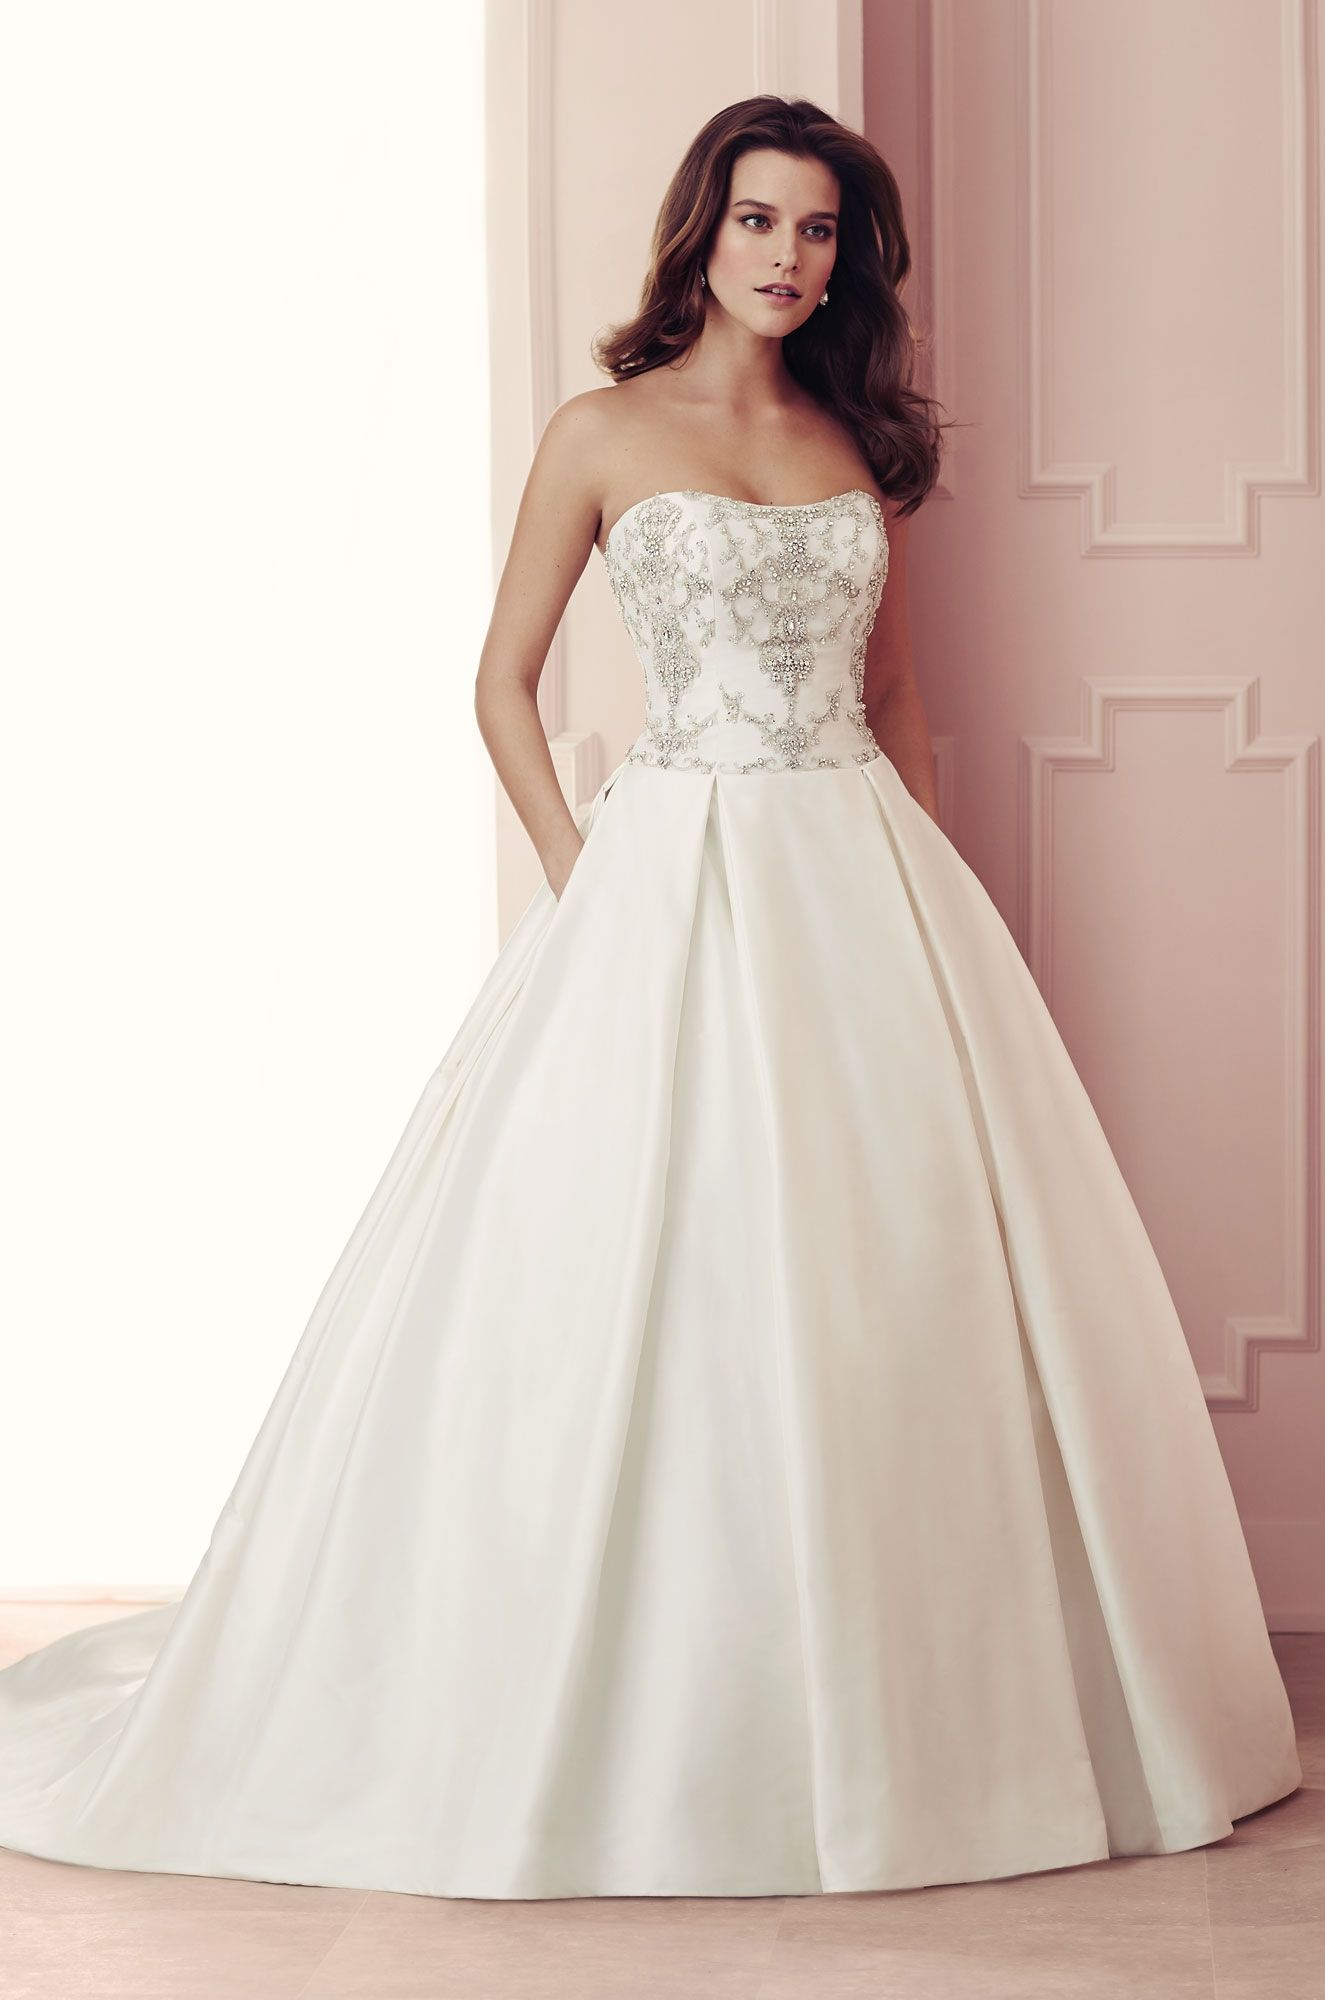 Paloma Blanca Wedding Dresses 2014 | Paloma blanca, Wedding dresses ...